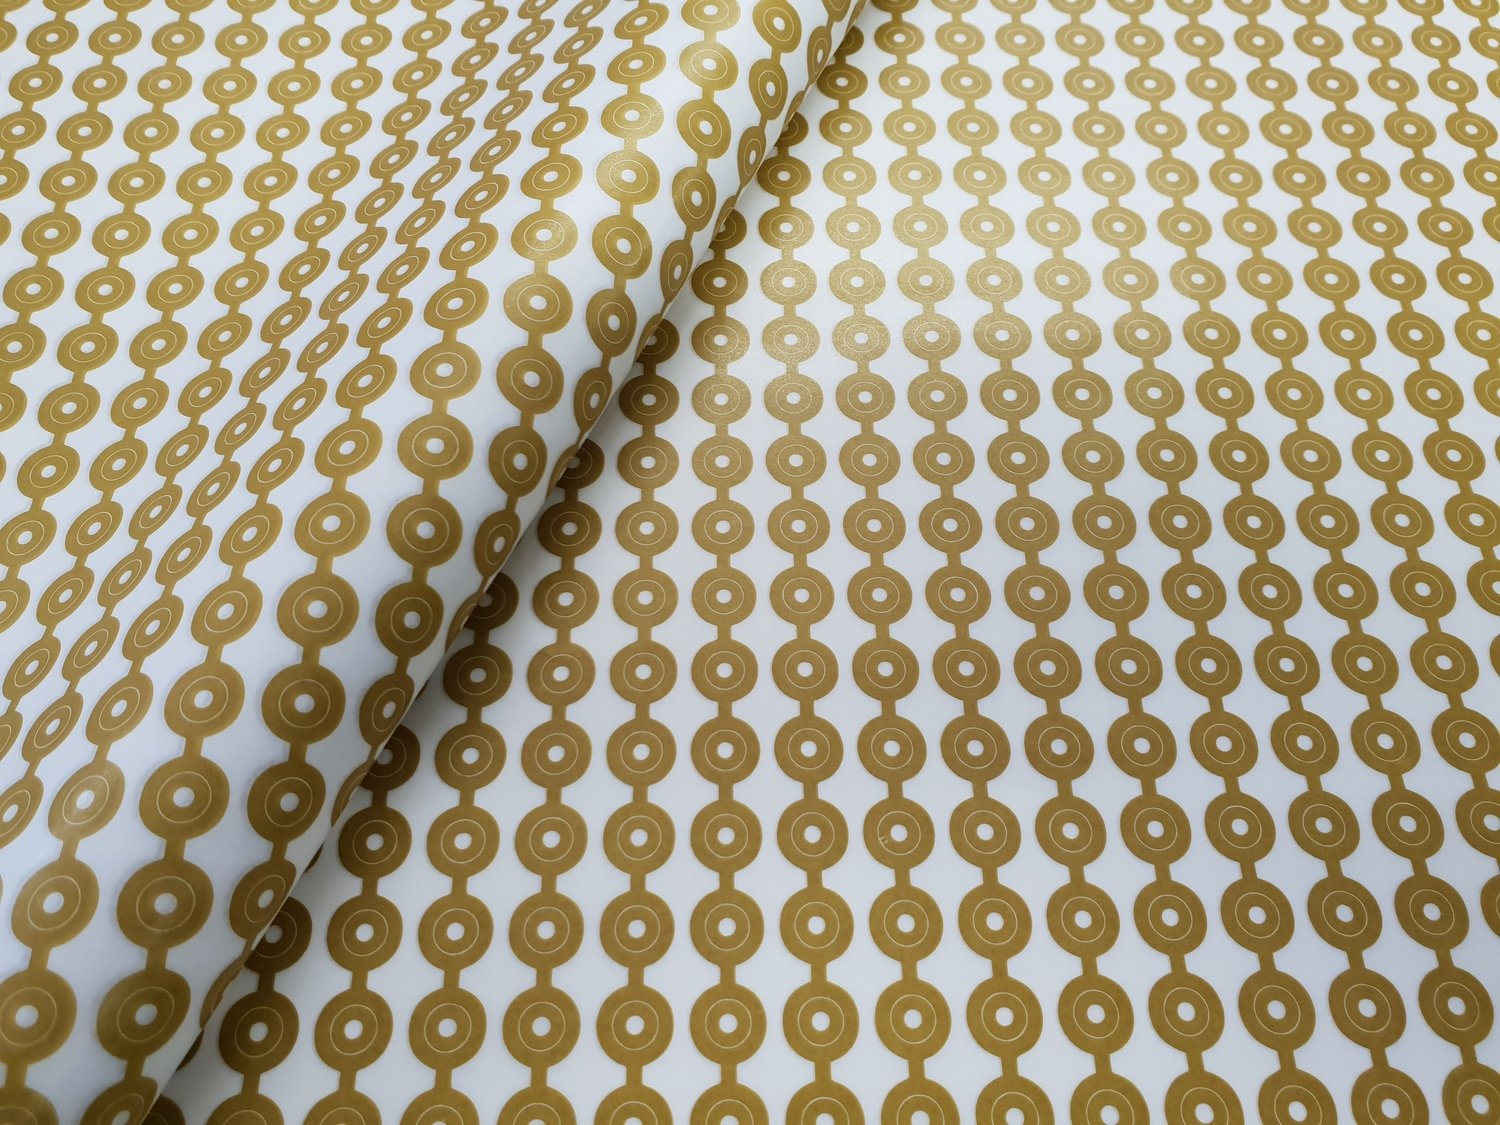 Tissue Paper- African Yellow Beads (Qty 25)